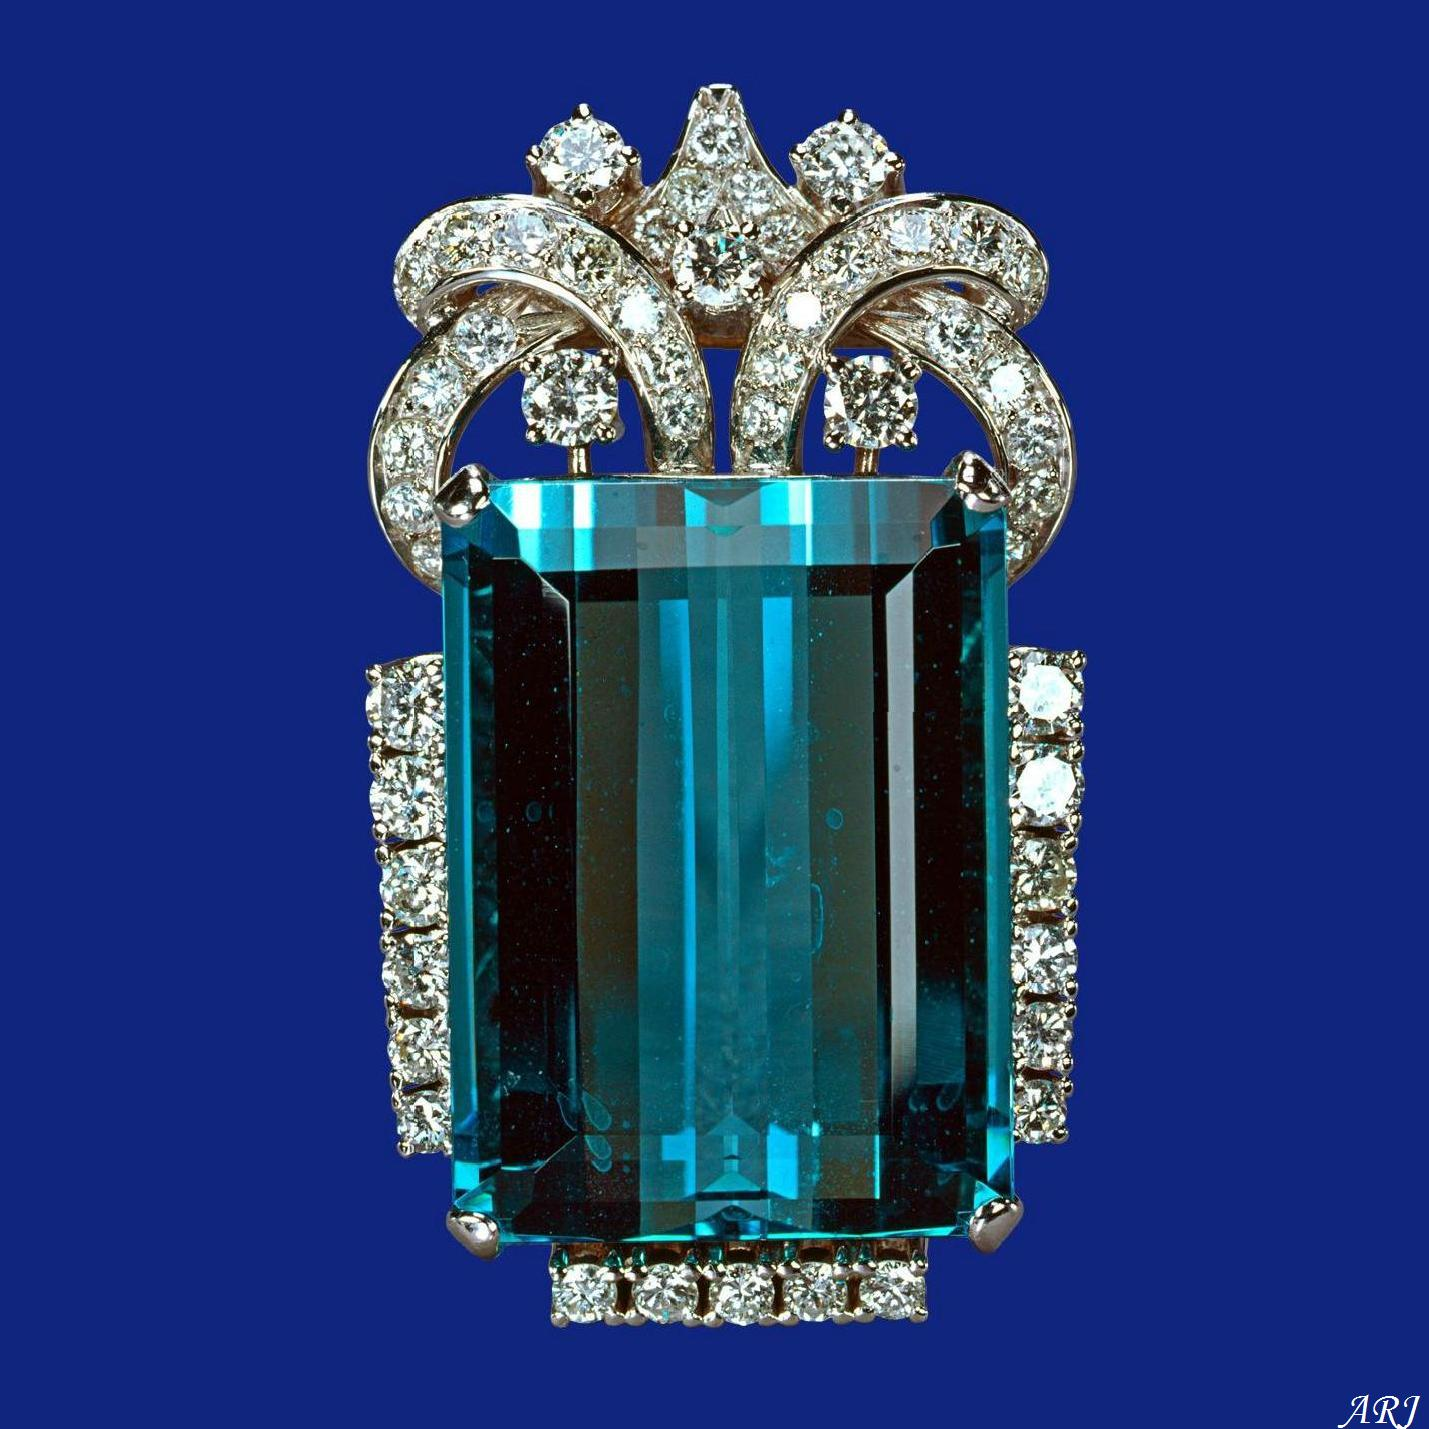 artemisia brazilian jewels queen jewel british the royal aquamarine brooch queens s